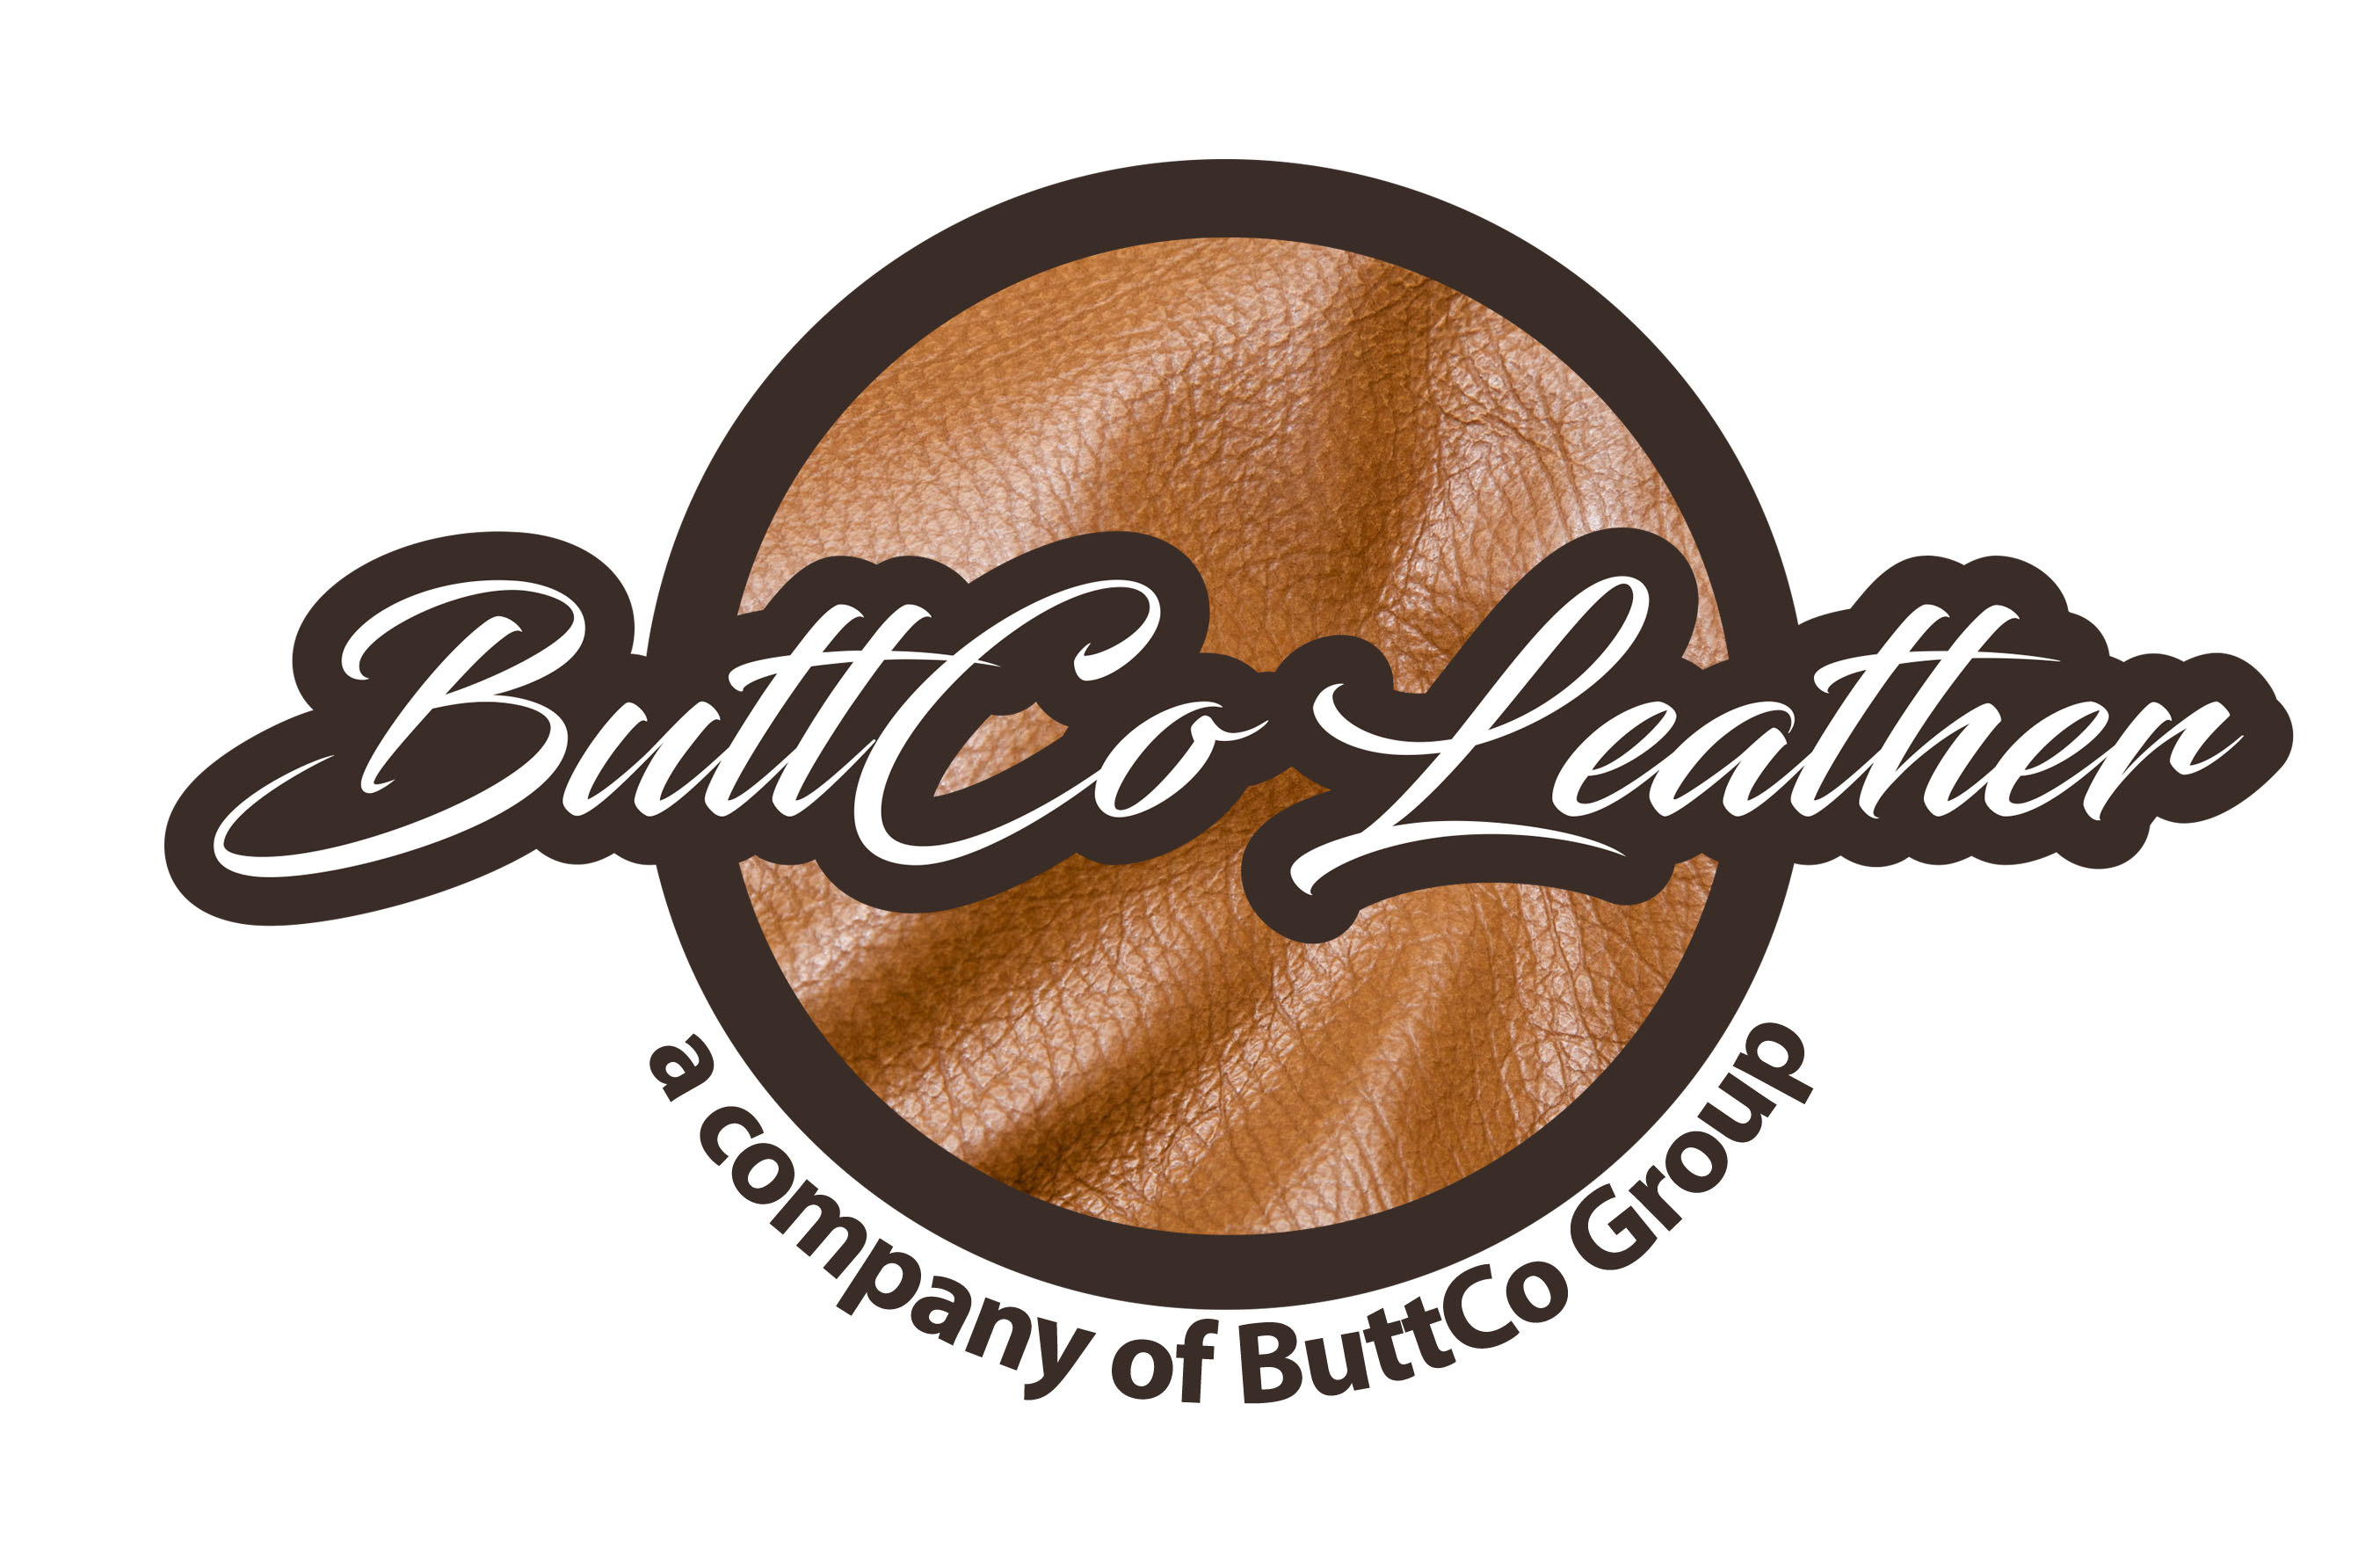 ButtCo Leather